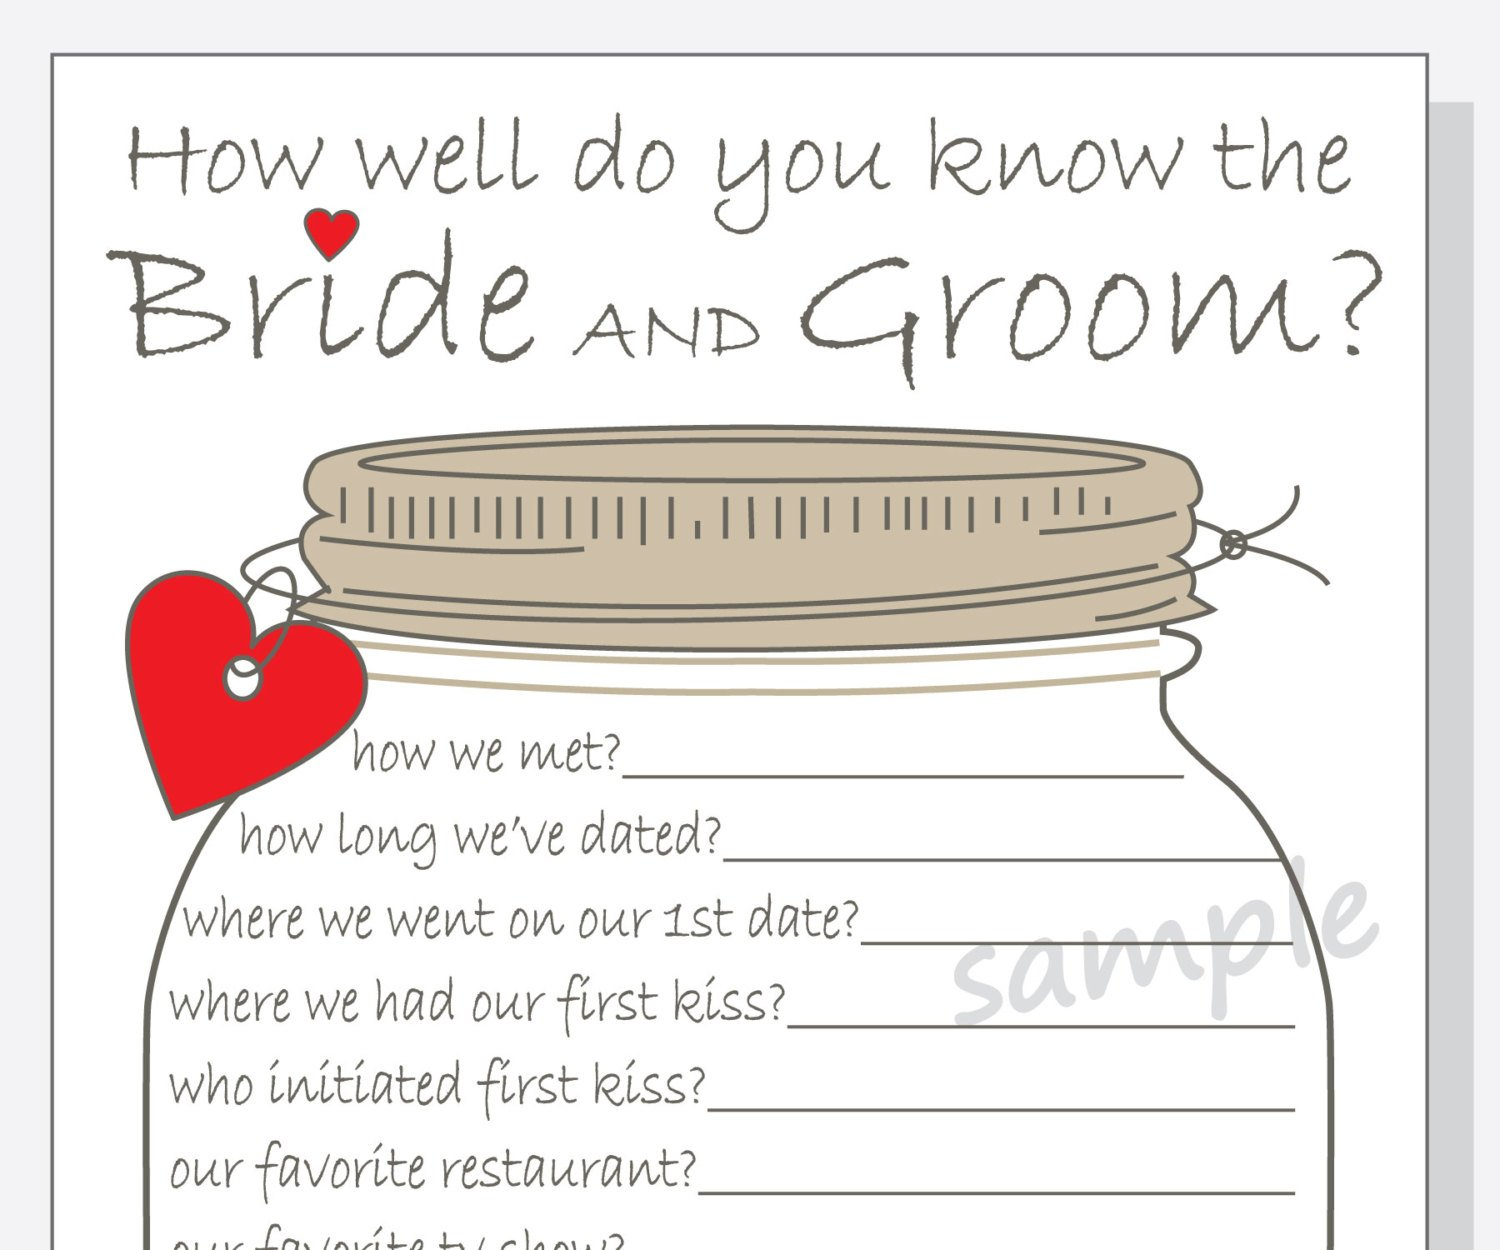 How Well Do You Know The Bride And Groom Printable Cards | Etsy - How Well Does The Bride Know The Groom Free Printable